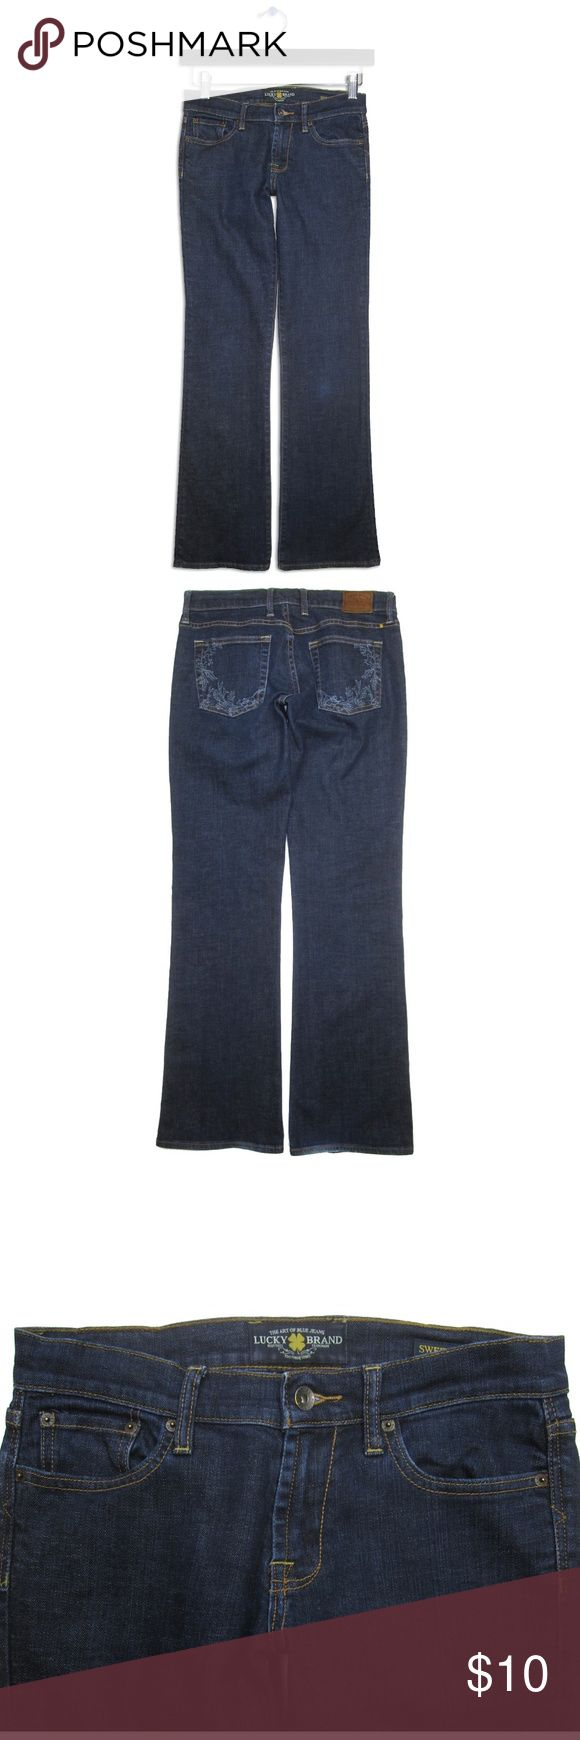 "Lucky Brand Sz 4 27 Sweet' N Low Boot Cut Jeans Lucky Brand Sz 4/27 Sweet' N Low Jean 5-pocket Embroidery on back pockets Dark blue Stretch Cotton/Spandex  Measurements (lying flat):  16"" Waist 18.5"" Hips 8"" Rise 10.5"" Thigh 8"" Knee 9.25"" Leg Opening 33"" Inseam  Great preowned condition except for a small lightened spot on the left knee. Lucky Brand Jeans Boot Cut"